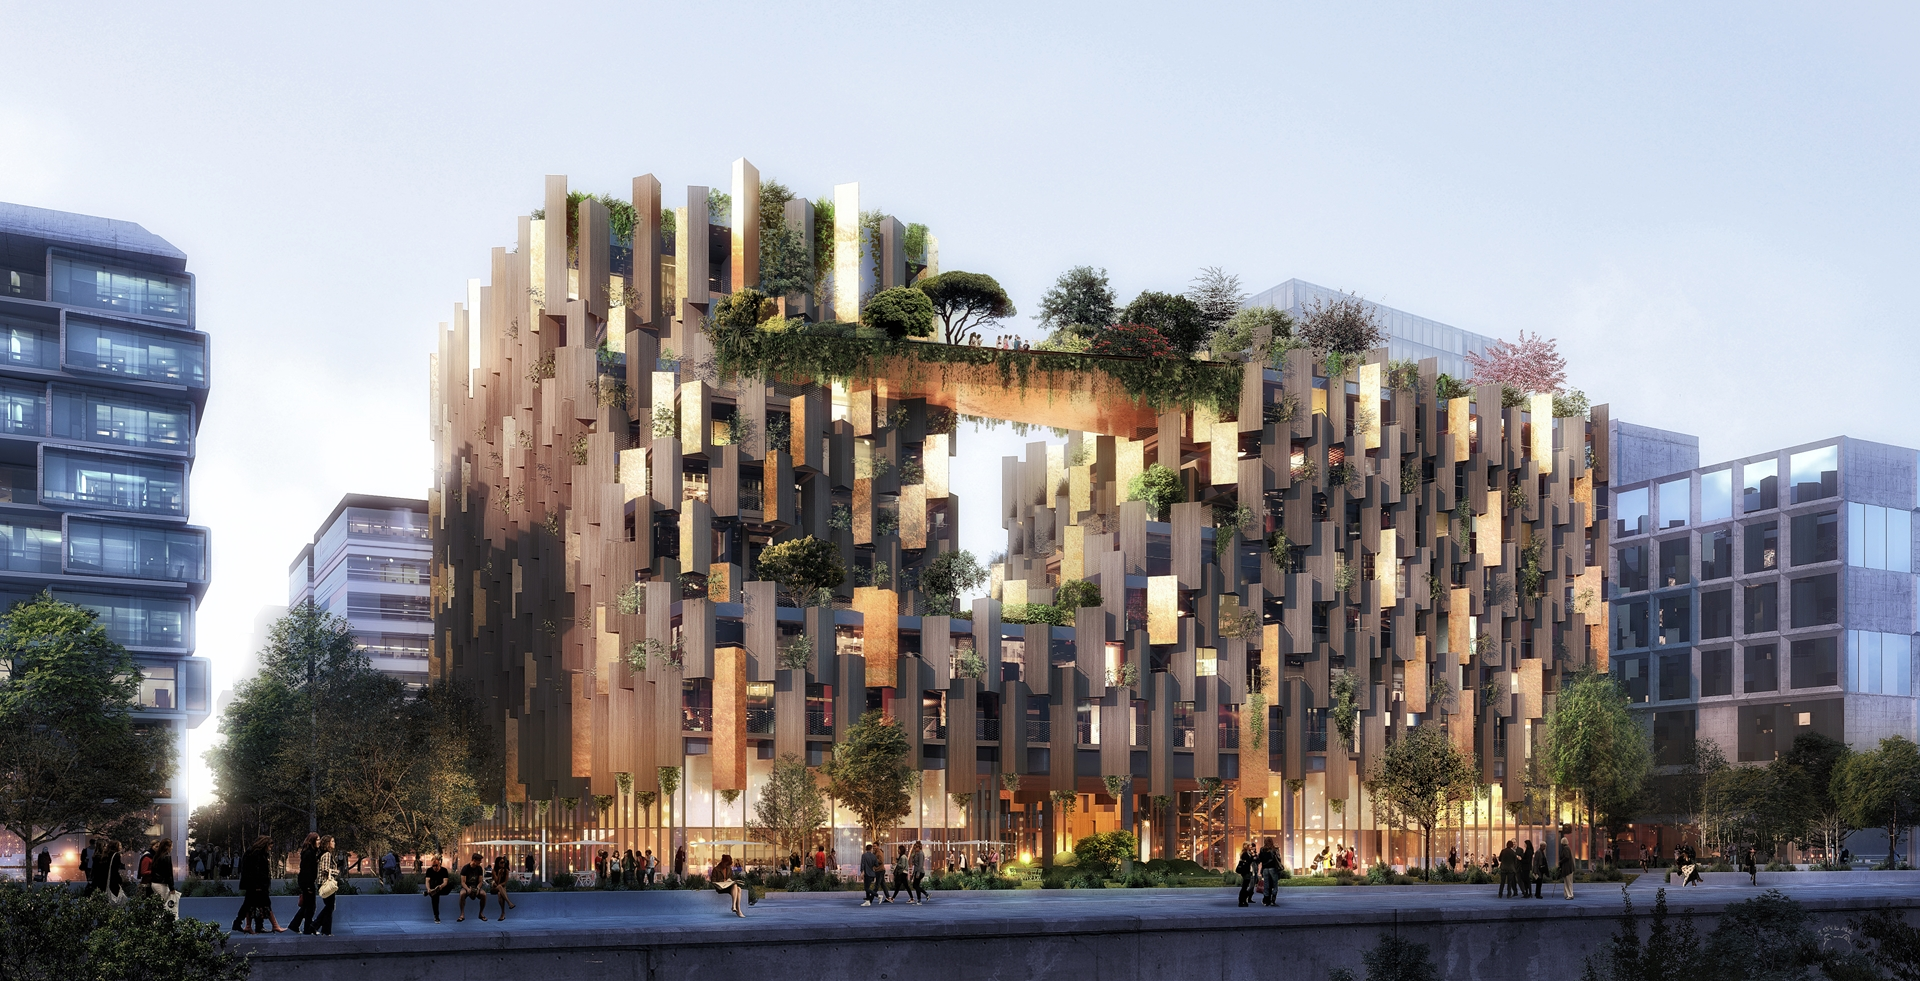 01_@LUXIGON_View from Planted Promenade (Copy)